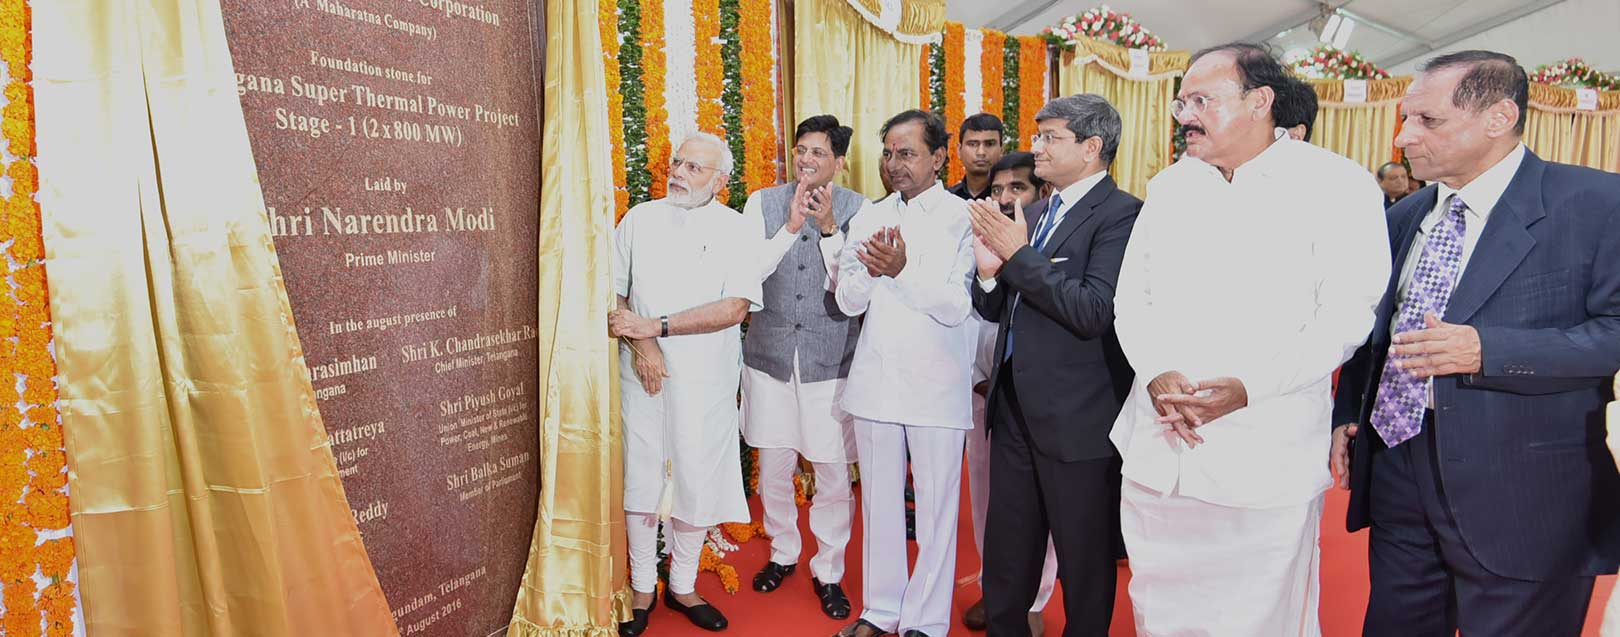 PM lays stone for NTPC's power plant in Telangana